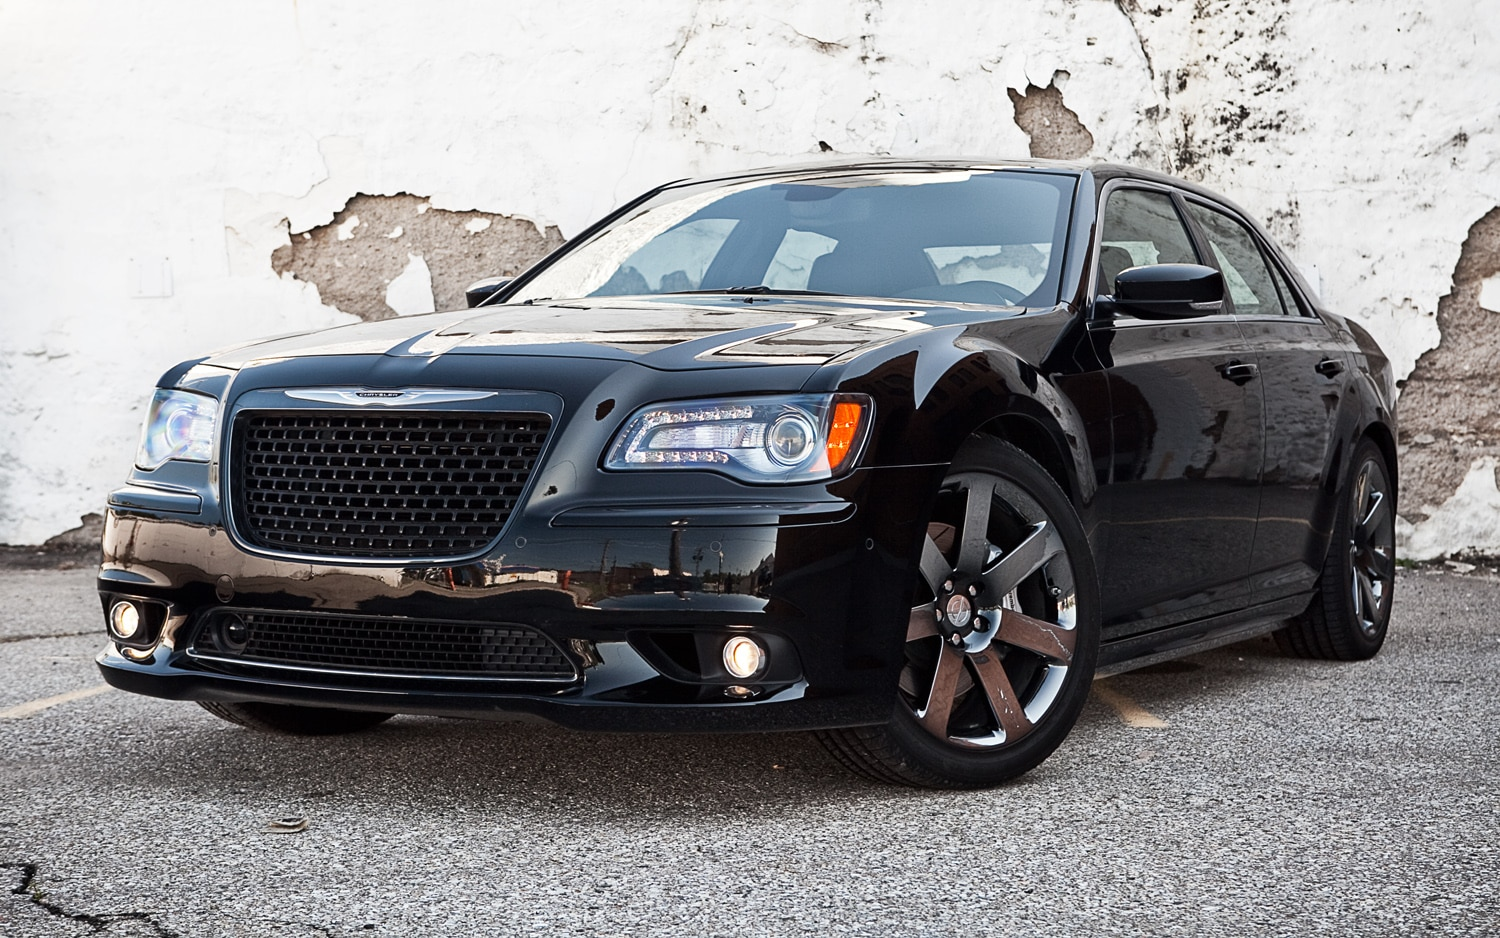 2012 Chrysler 300 SRT8  Editors Notebook  Automobile Magazine